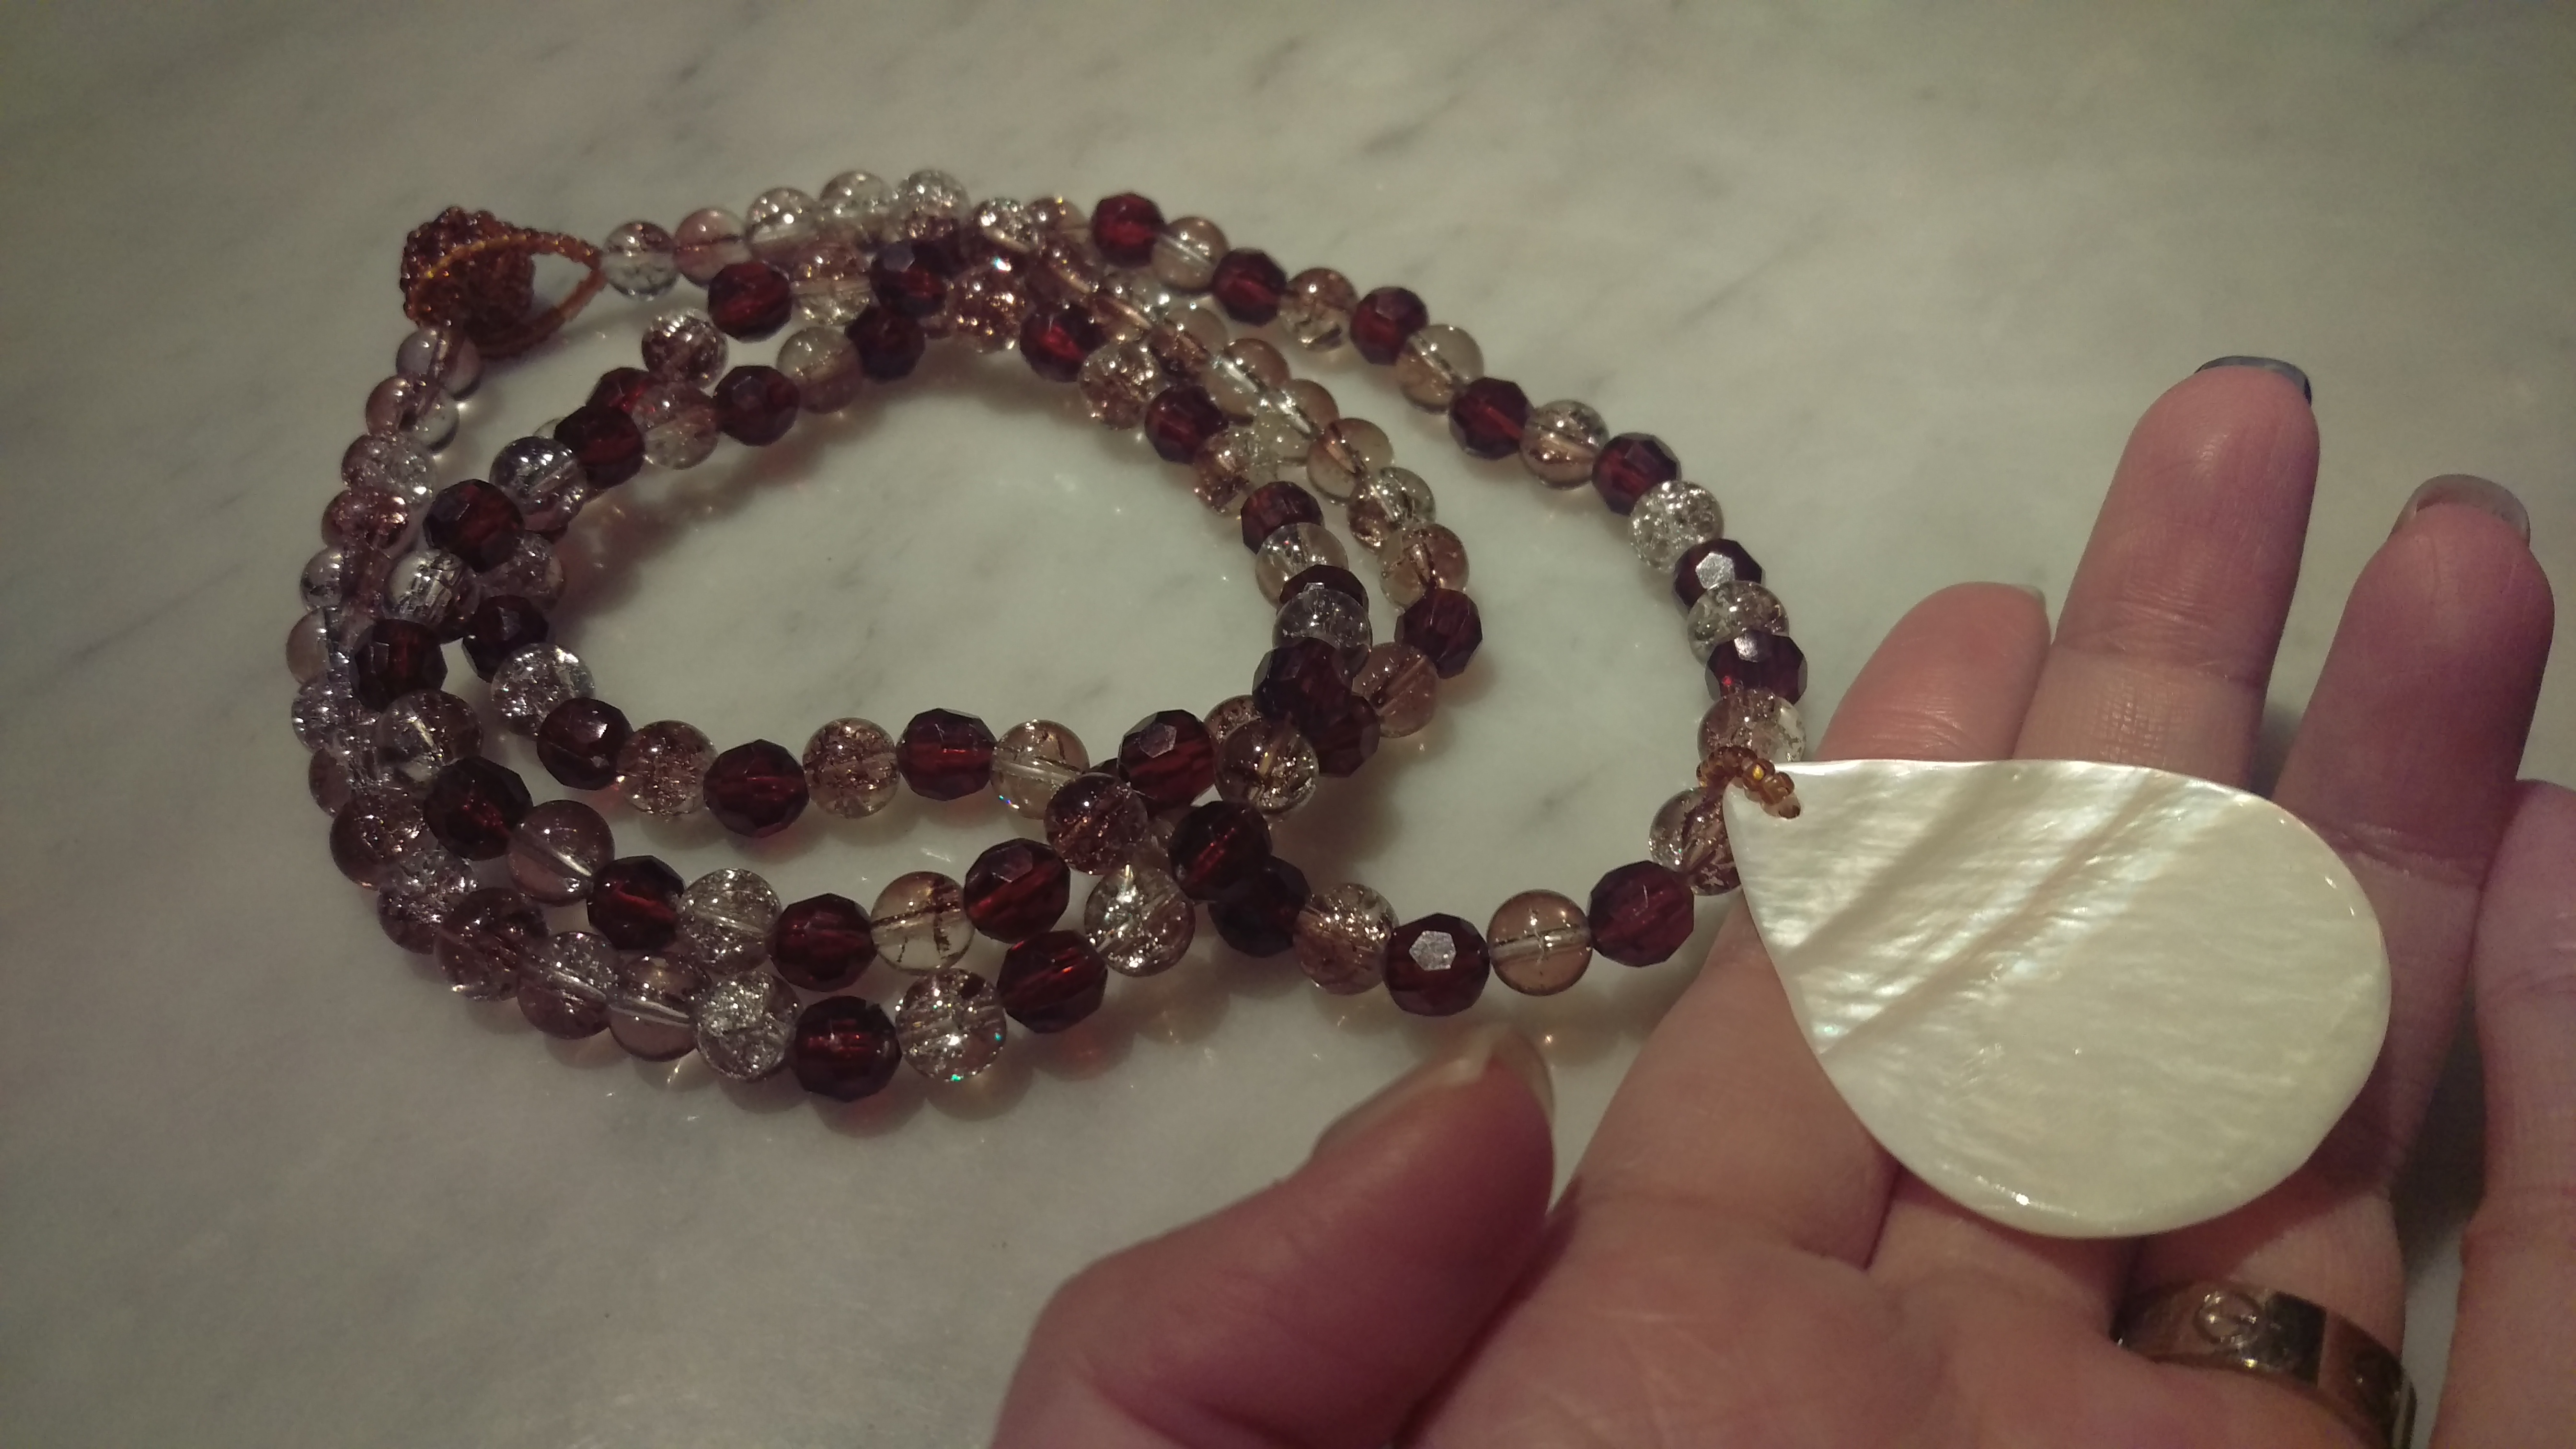 My necklace with all the shades and colours of tonal subtleties...